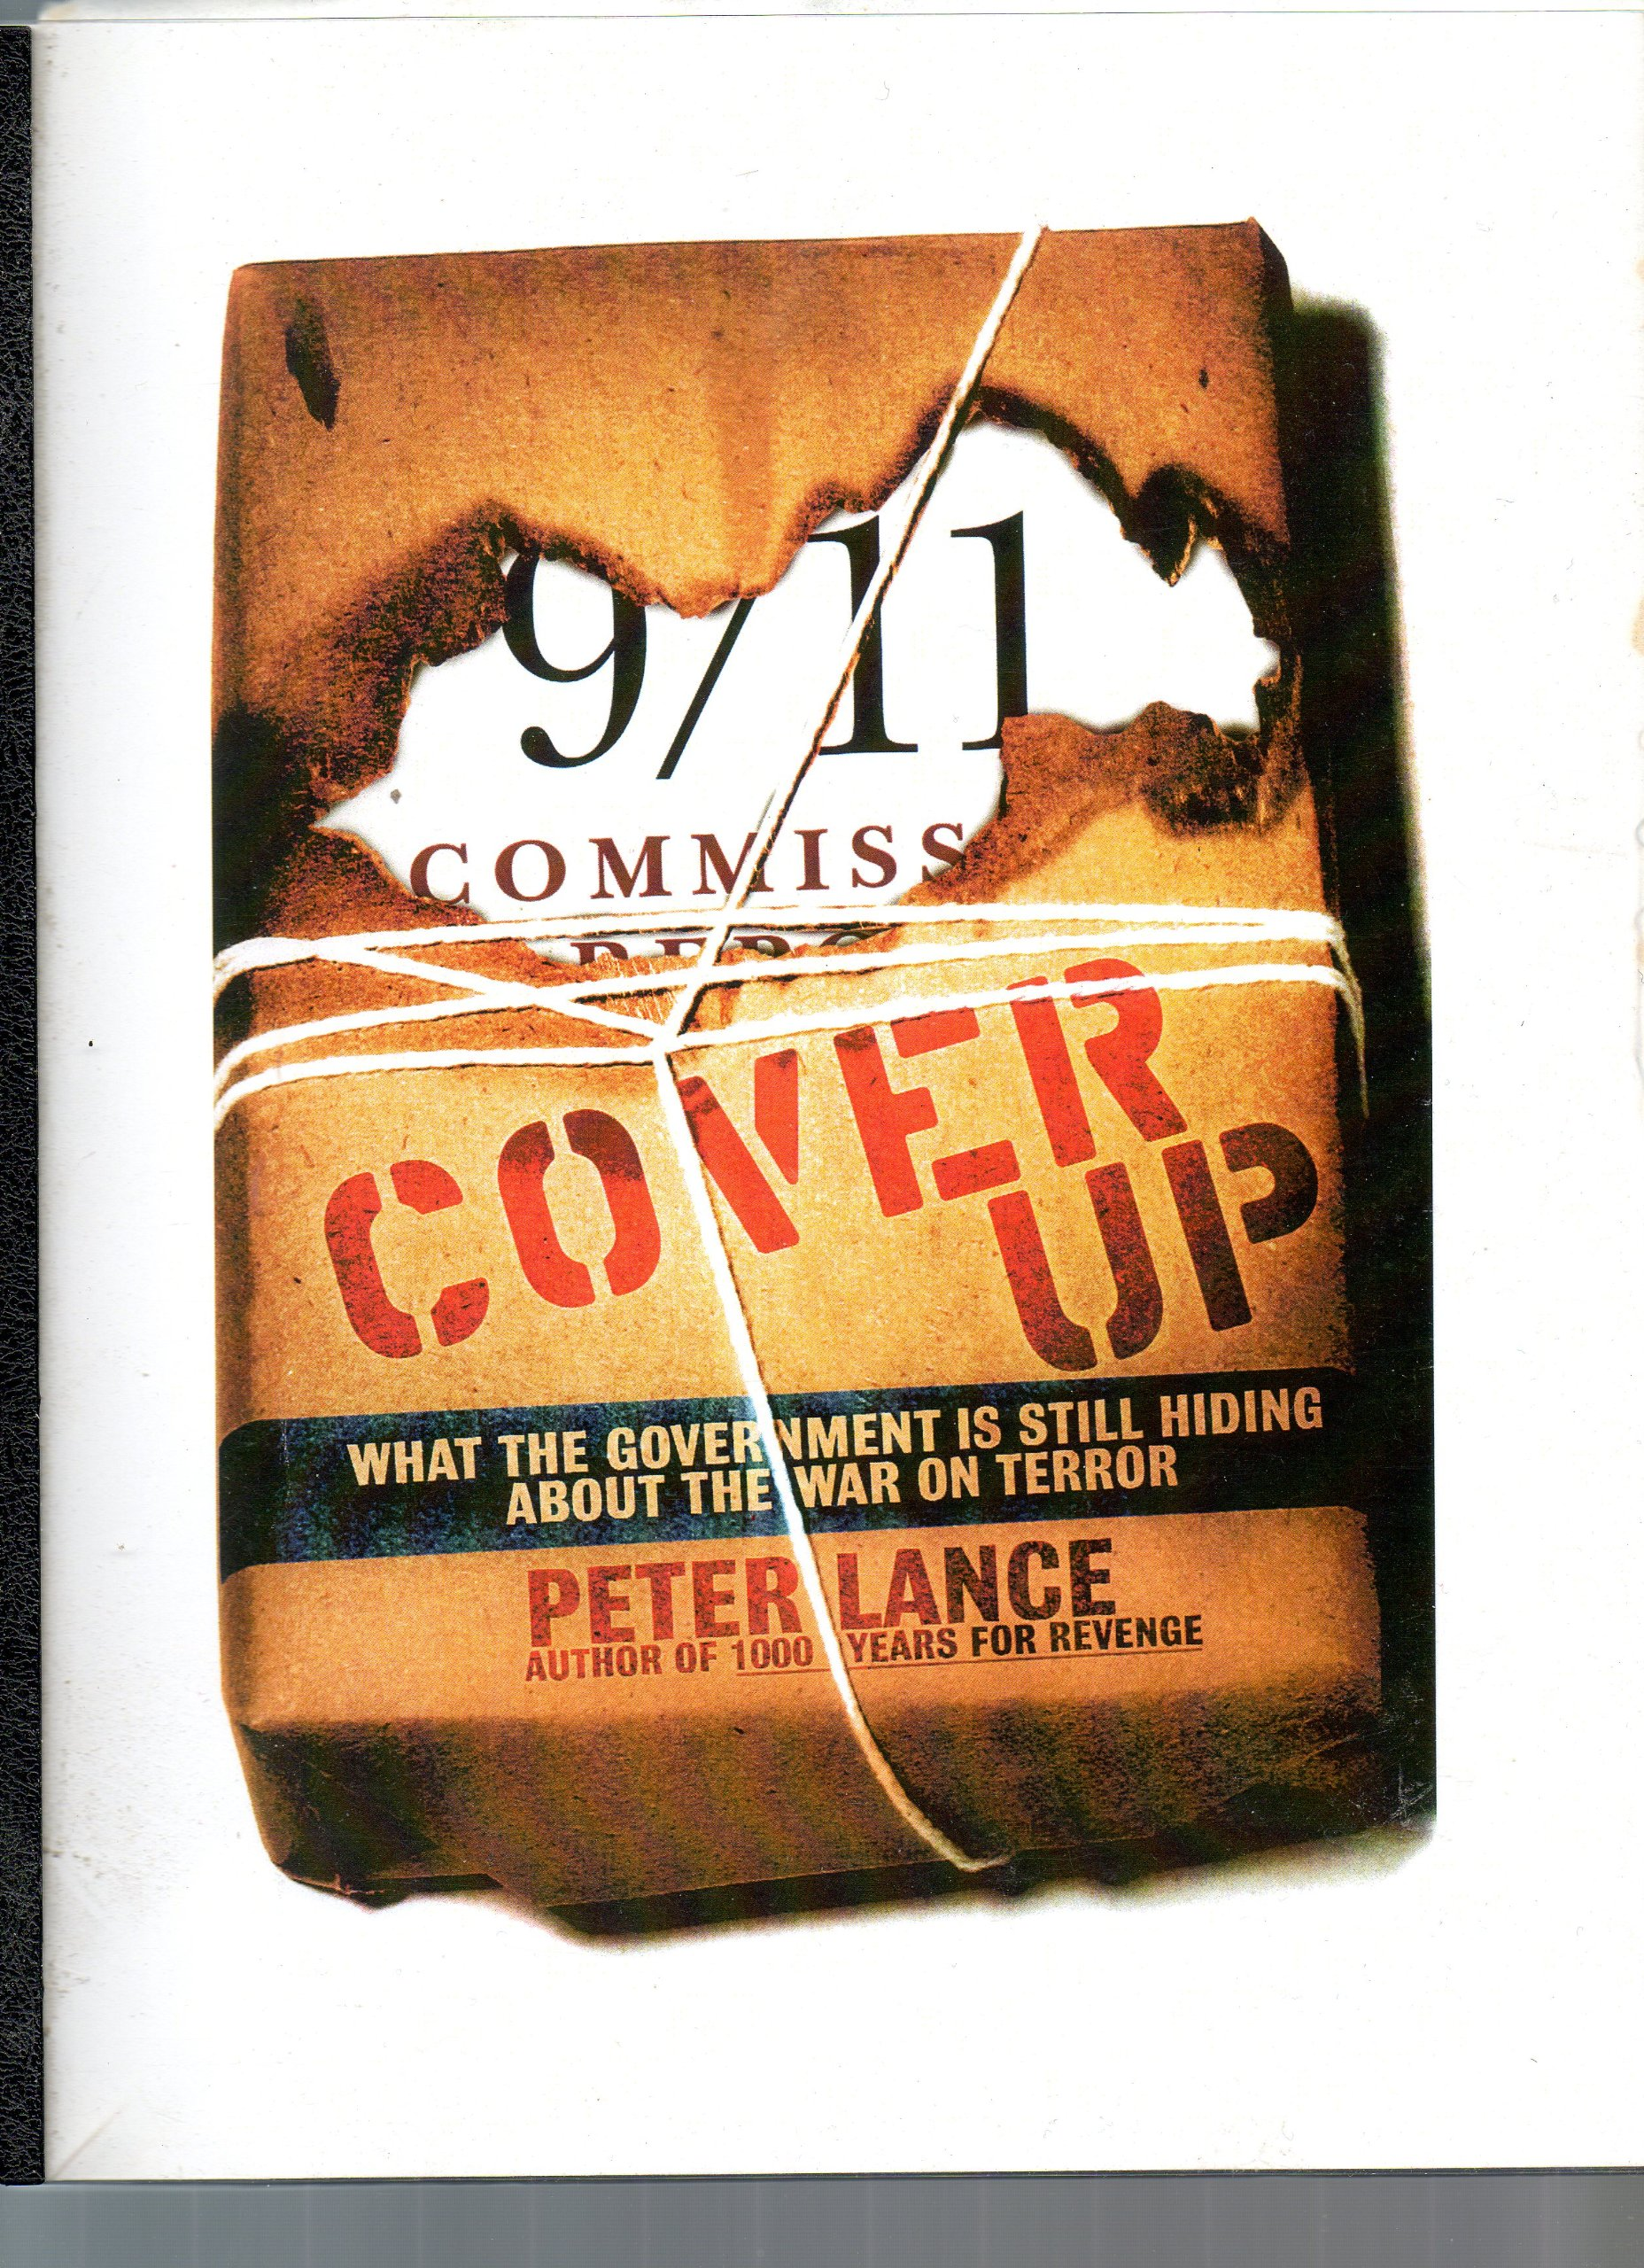 9/11 Commission Cover Up. What the Government is Still Hiding About the War on Terror pdf epub